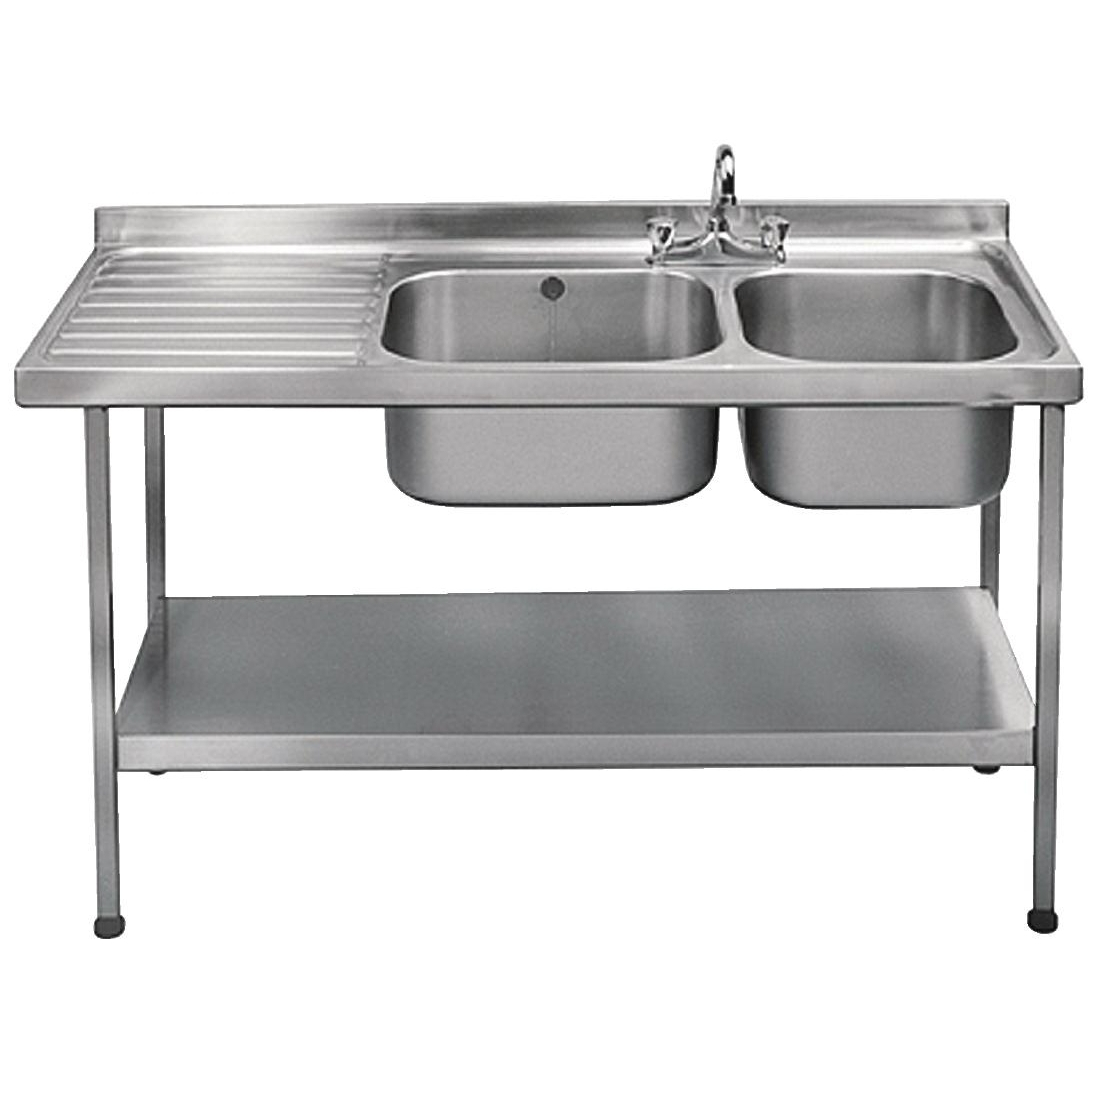 Franke Sissons Self Assembly Stainless Steel Double Sink Right Hand Bowl 1500x600mm